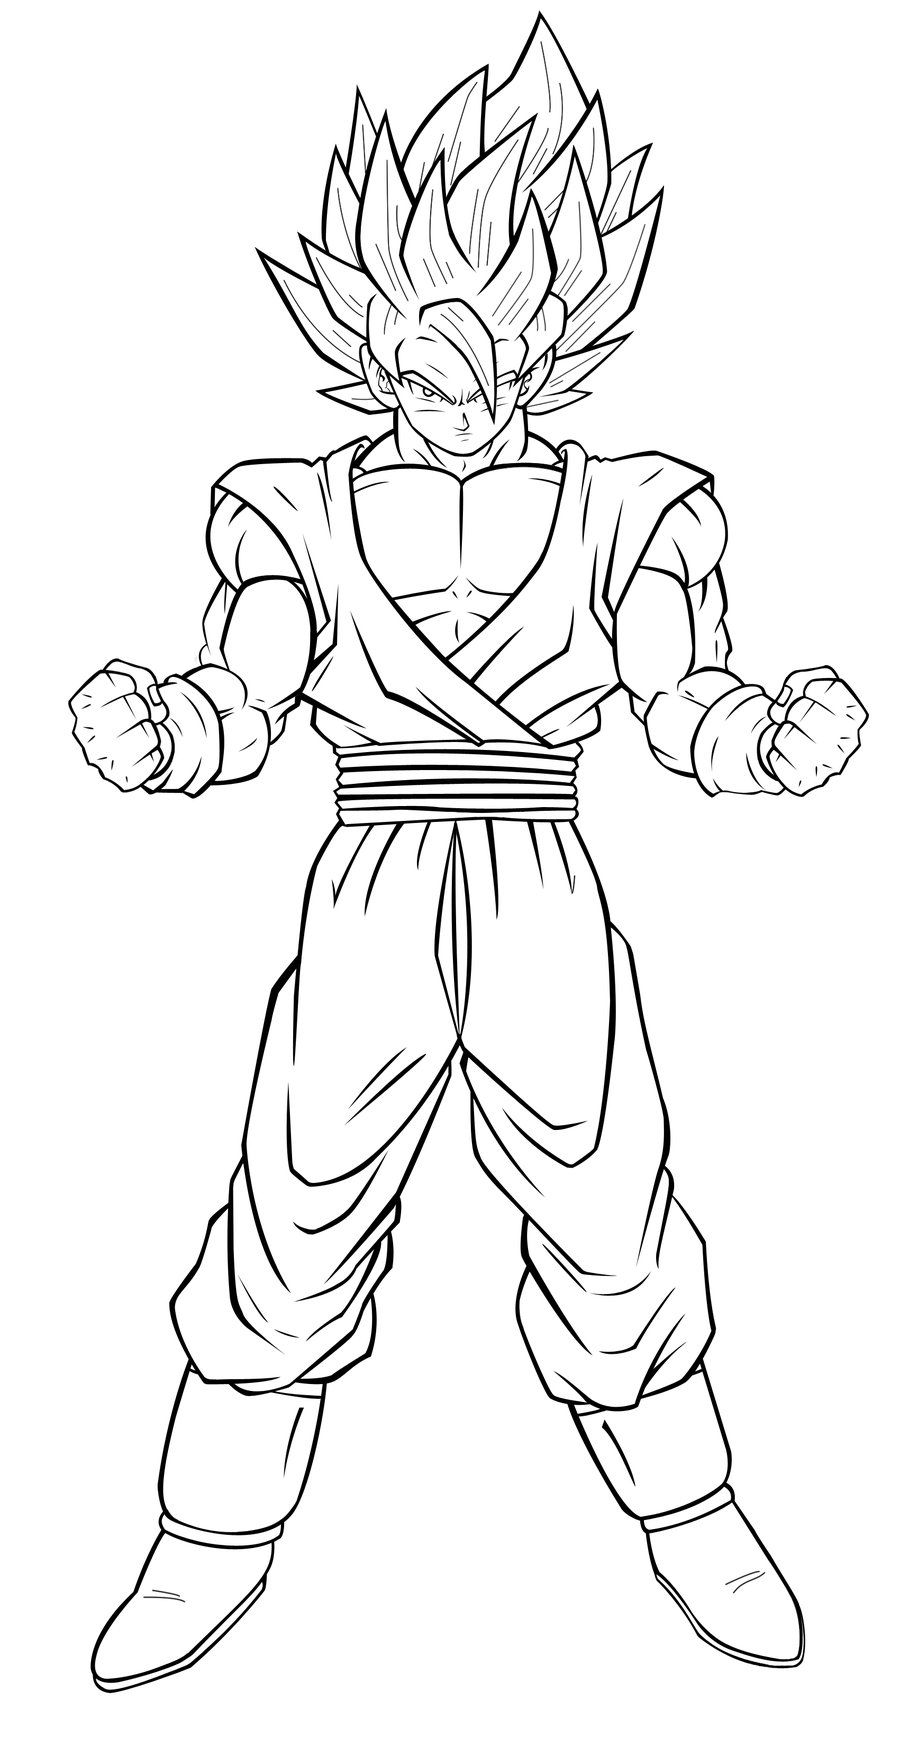 Coloriage dragon ball z sangoku super sayen 3 dragon - Dessin de dragon ball za imprimer ...